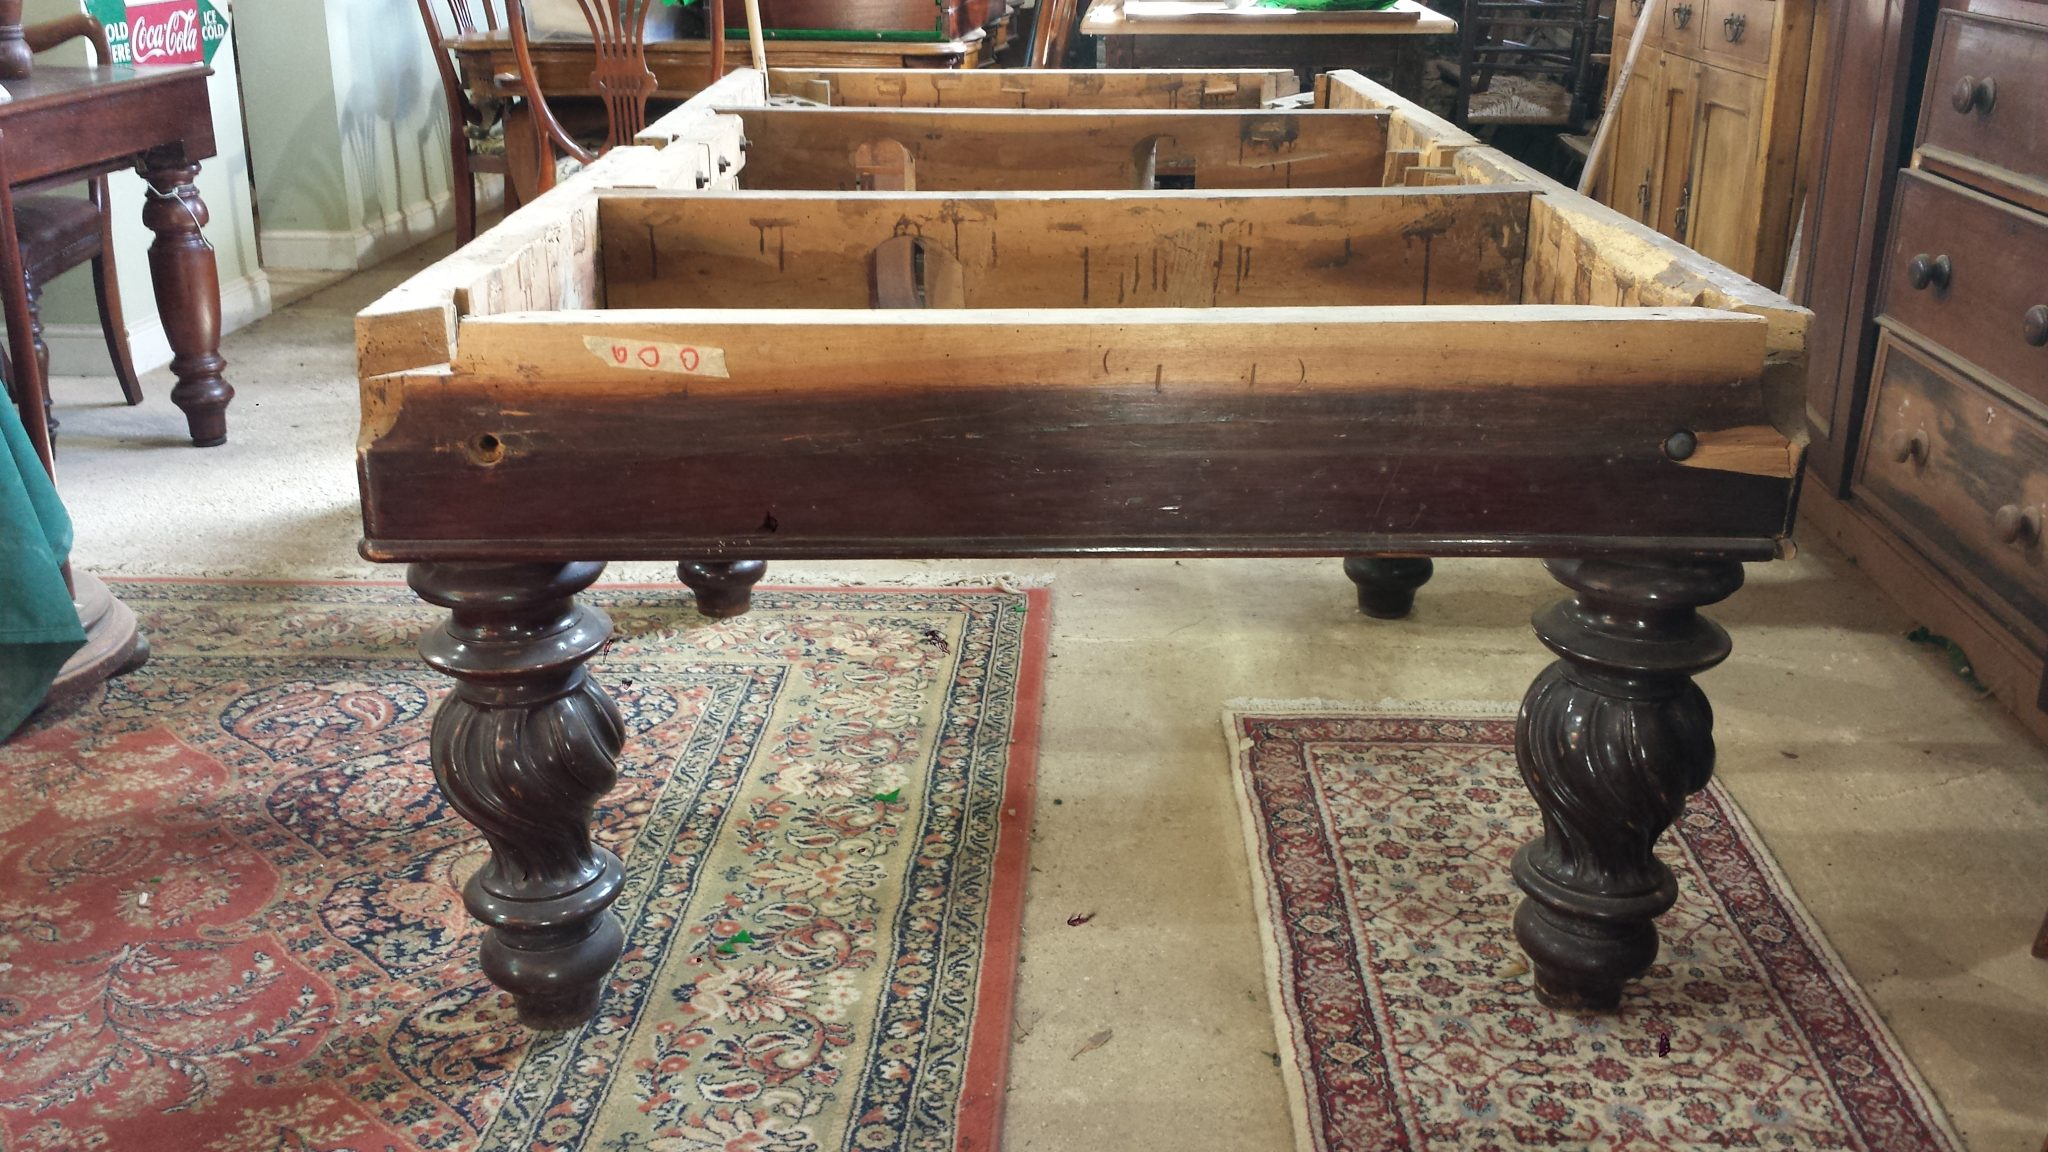 Restoring Antique Italian Pool Table Browns Antiques